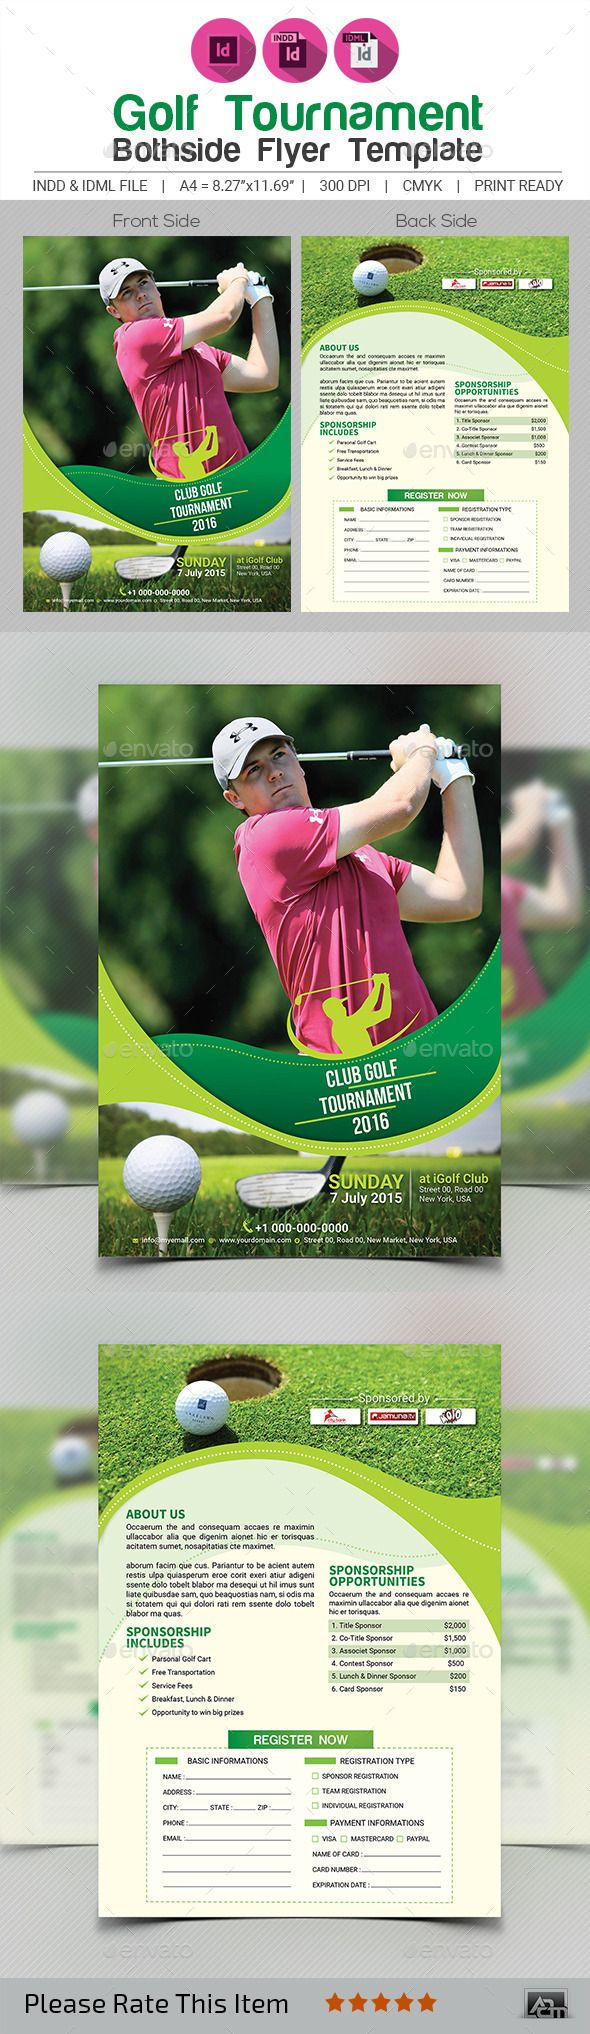 Golf Tournament Flyer Template V  Flyer Template Golf And Event